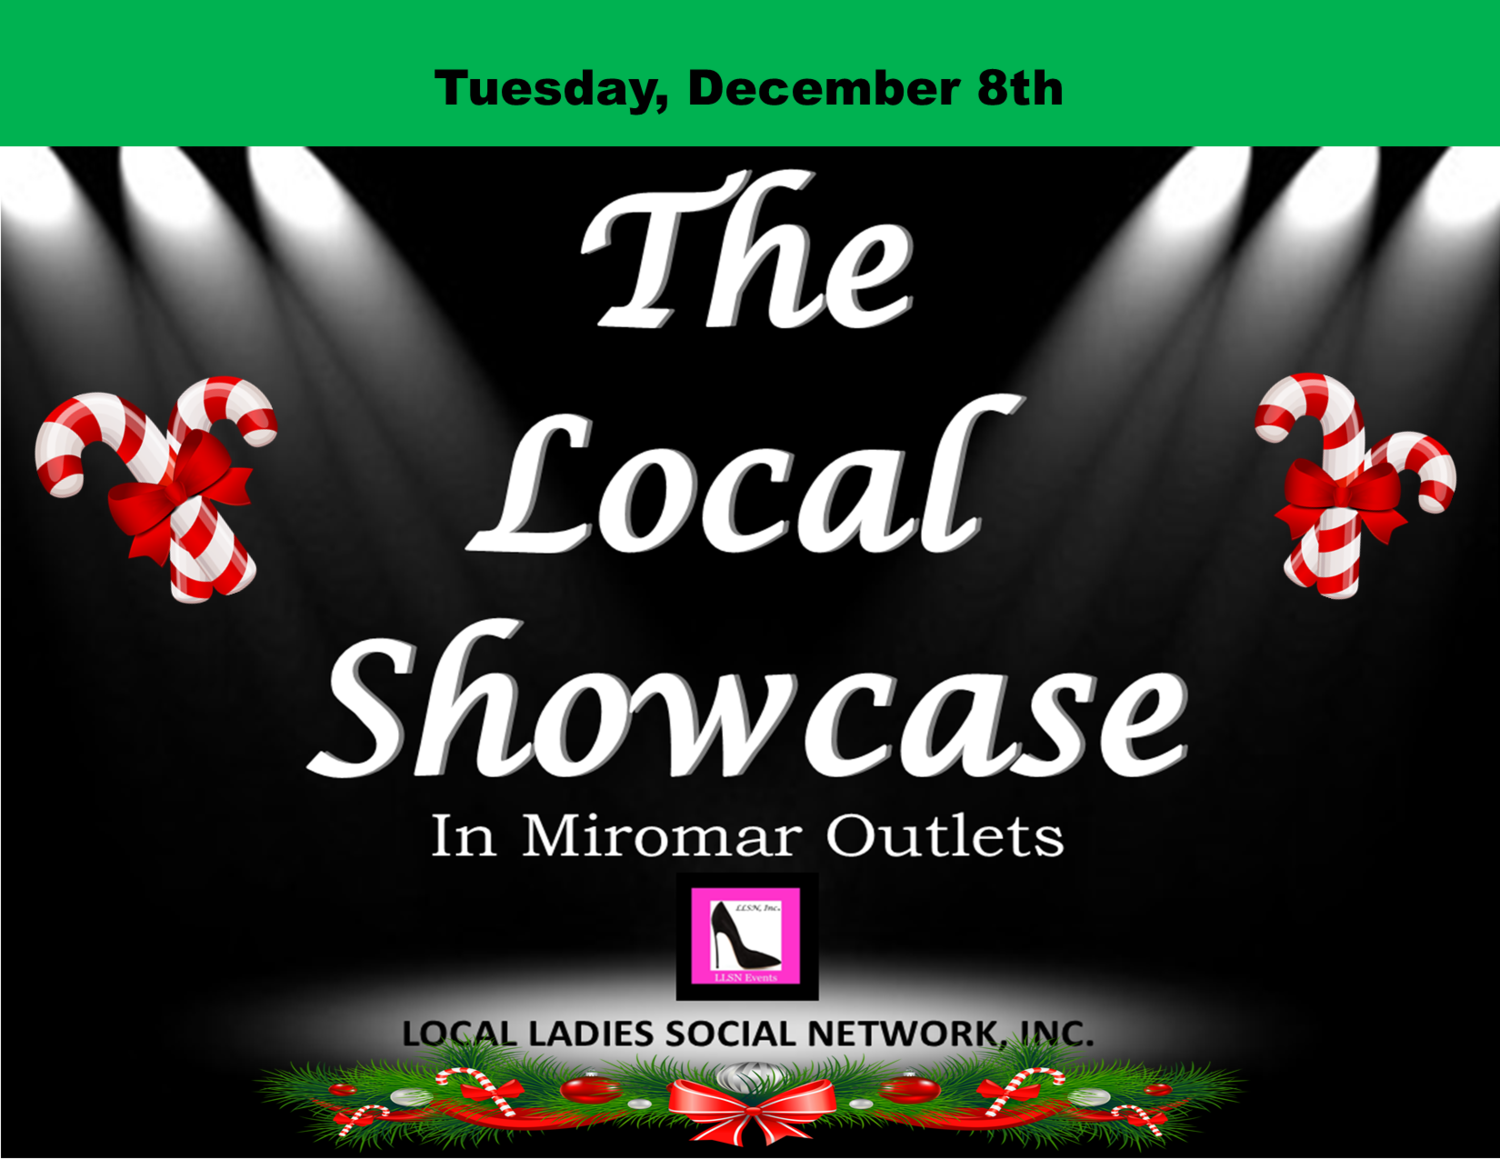 Tuesday, December 8th 11am-7pm.